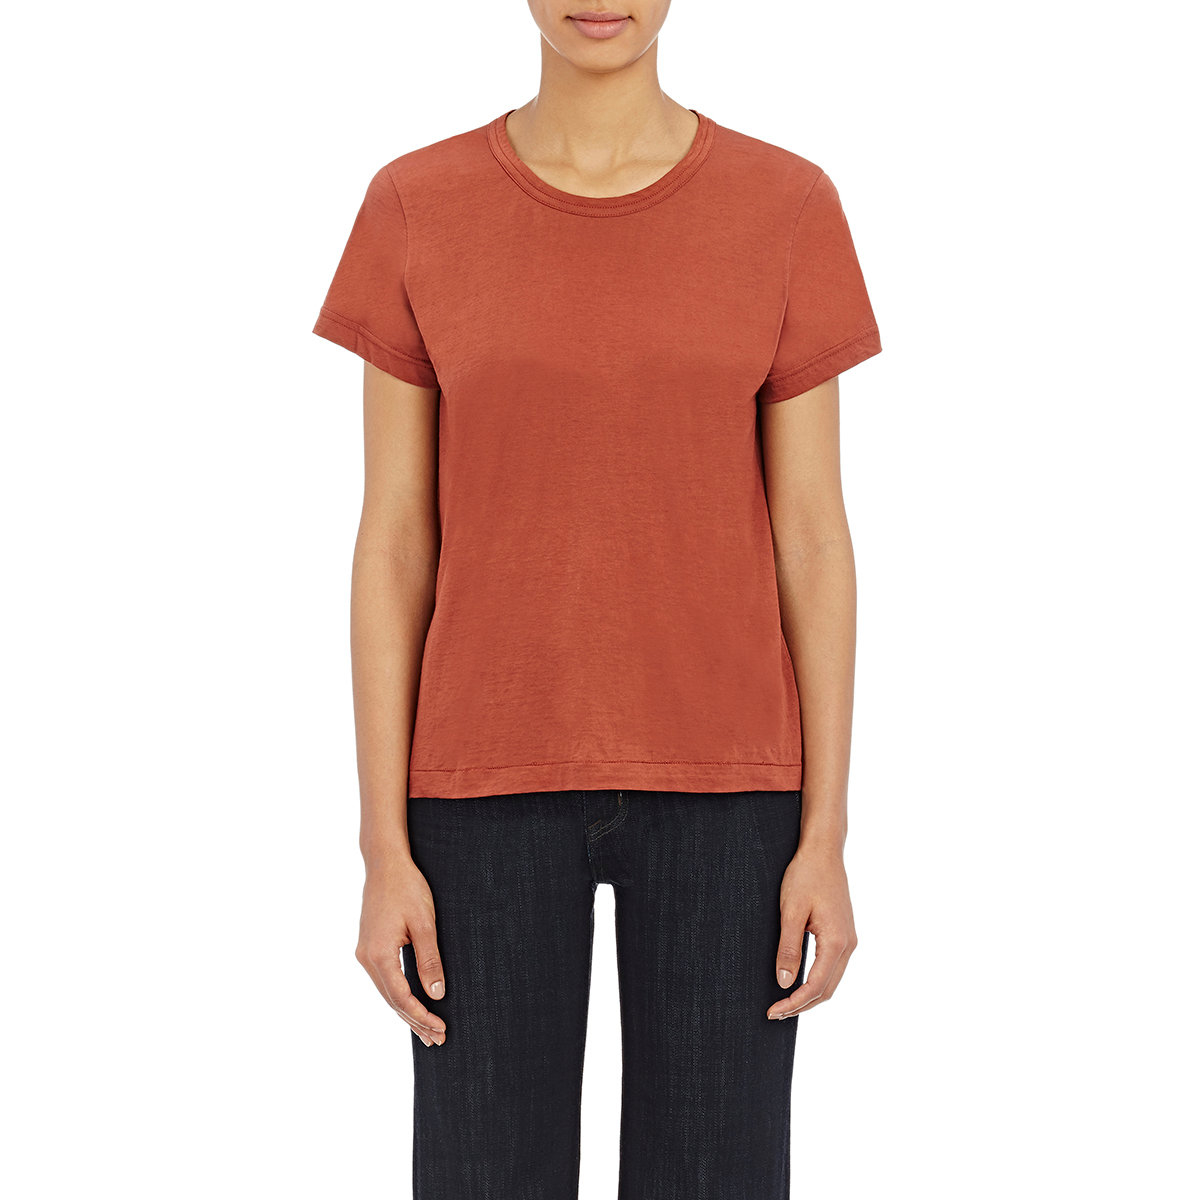 helmut lang women 39 s crewneck t shirt in orange lyst. Black Bedroom Furniture Sets. Home Design Ideas